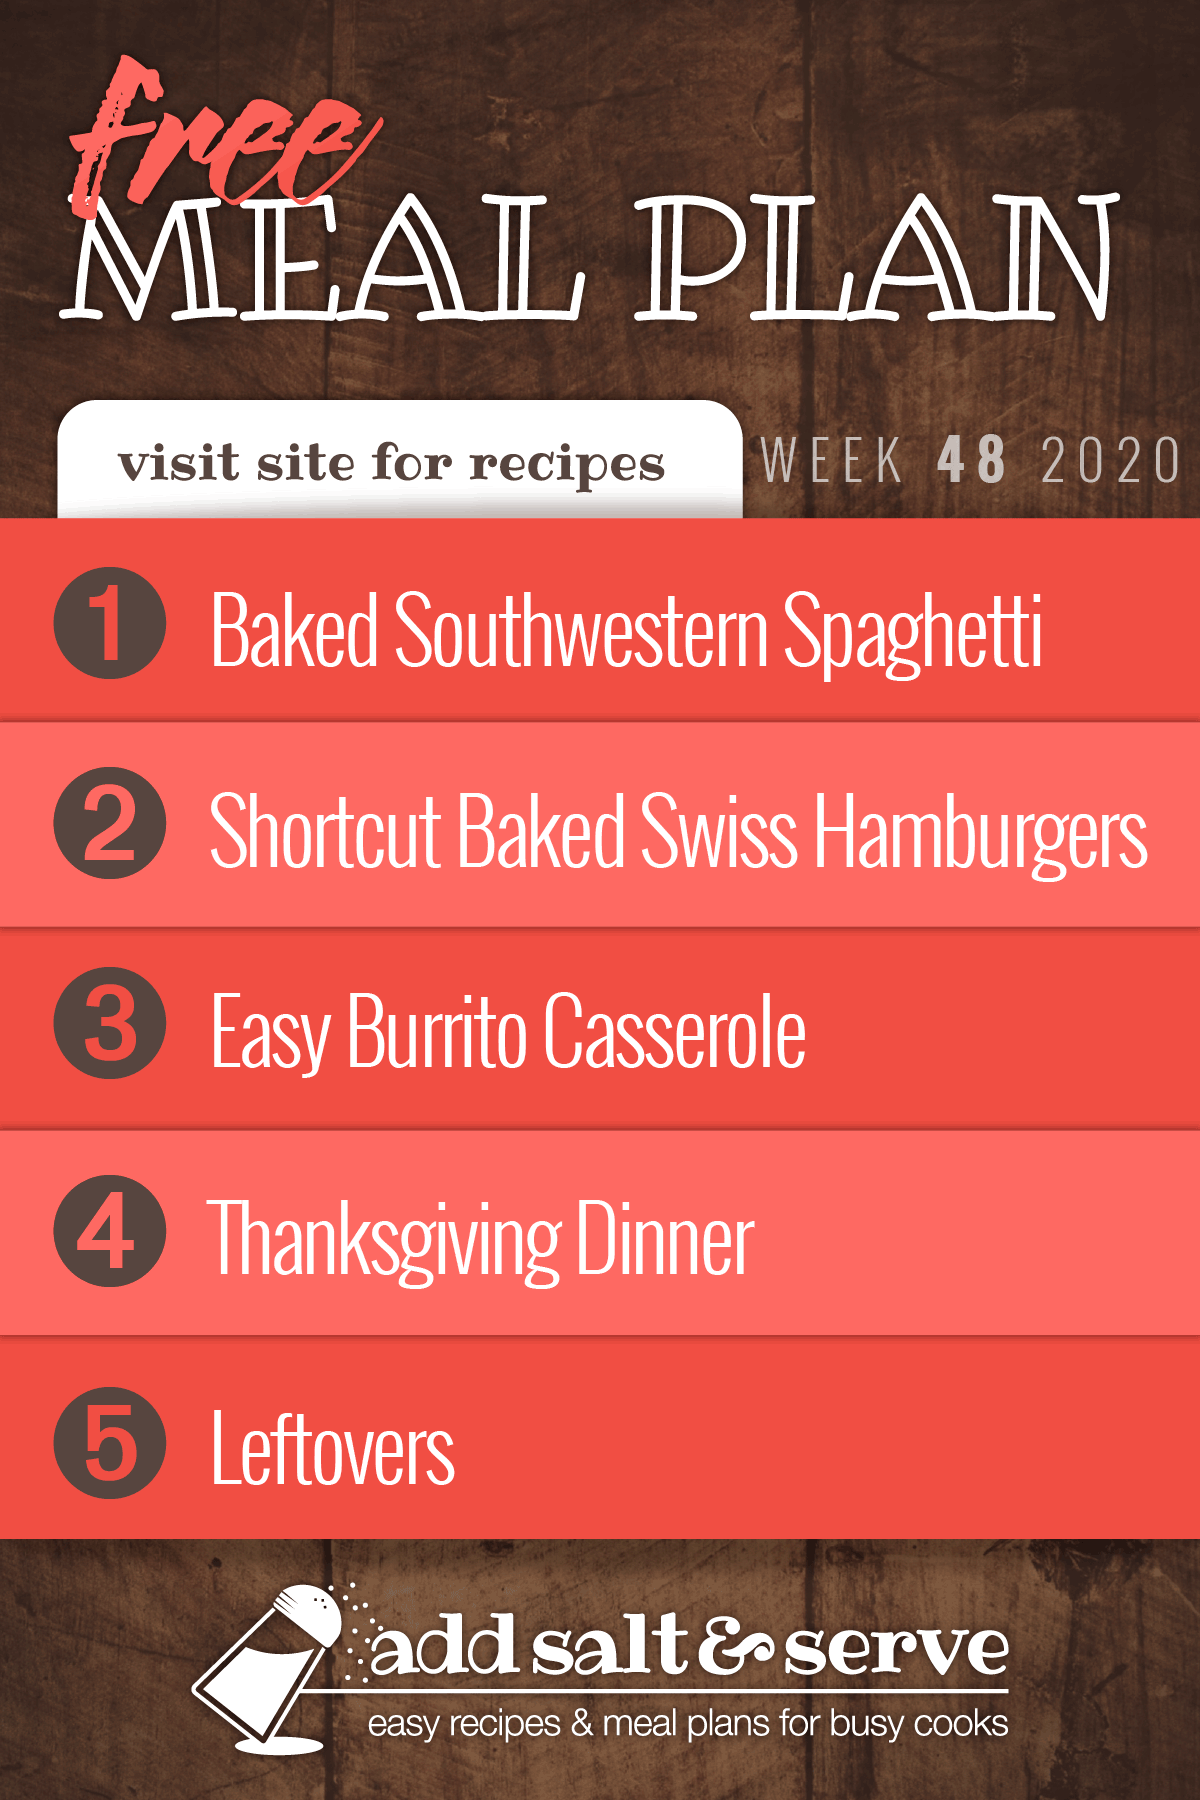 Free Meal Plan for Week 48 2020: Baked Southwestern Spaghetti, Shortcut Baked Swiss Hamburgers, Easy Burrito Casserole, Thanksgiving Dinner, Leftovers - Visit Add Salt & Serve for recipes